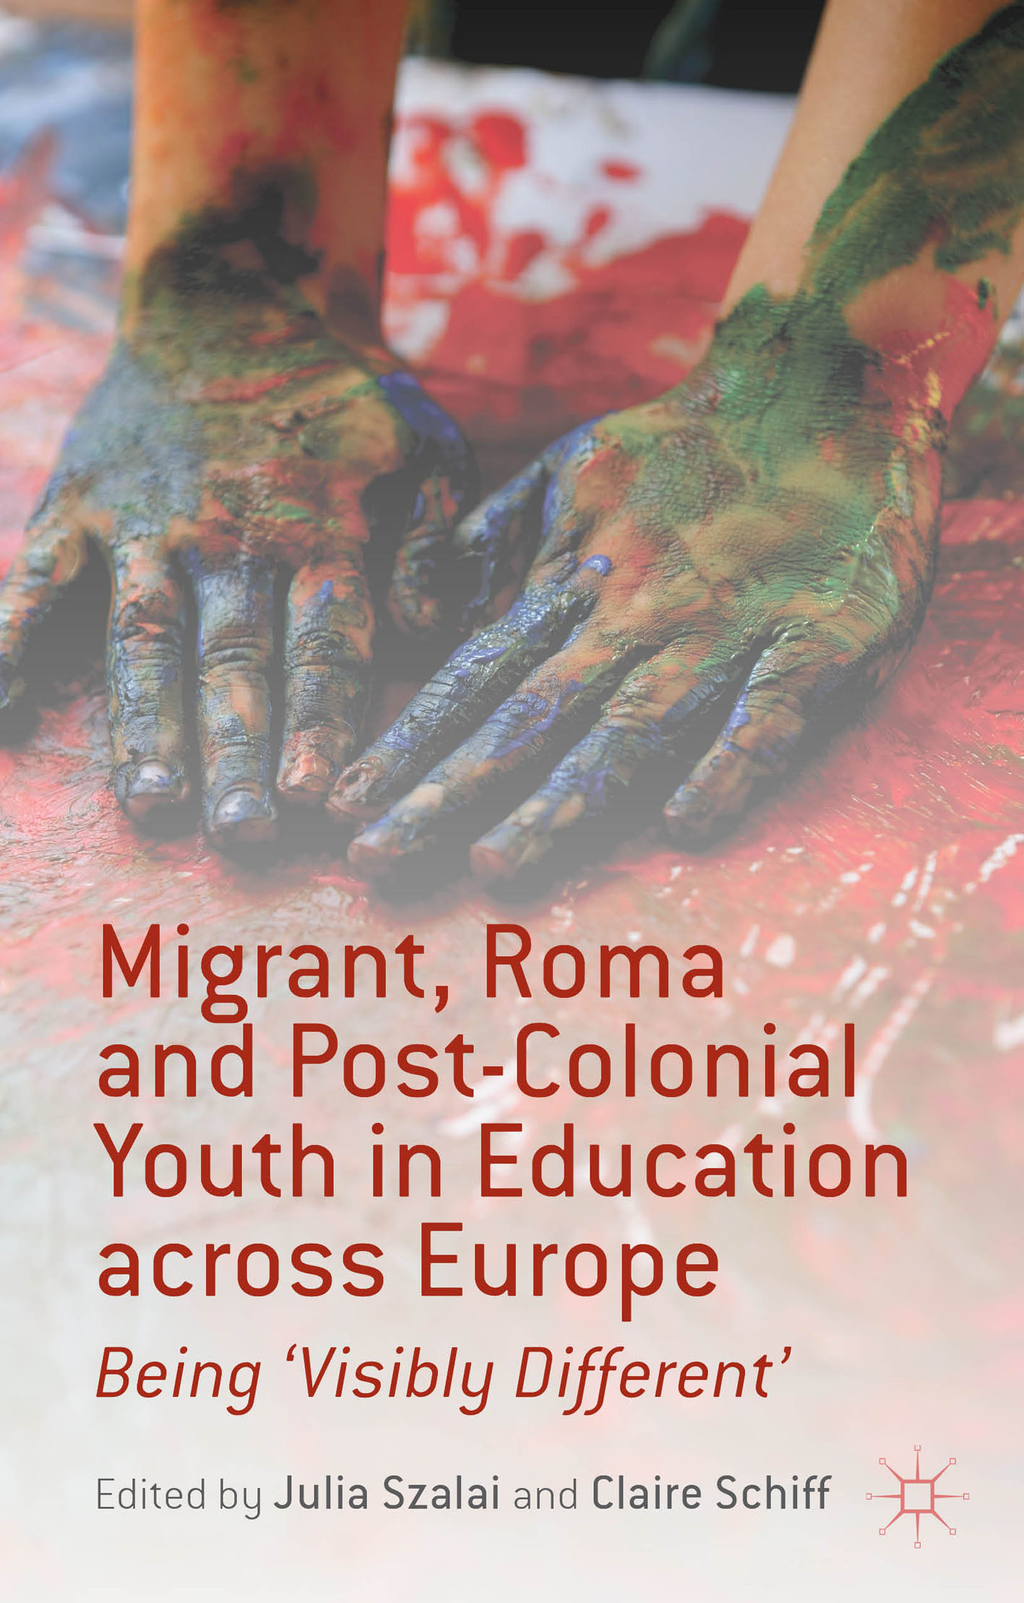 Migrant,  Roma and Post-Colonial Youth in Education across Europe Being 'Visibly Different'